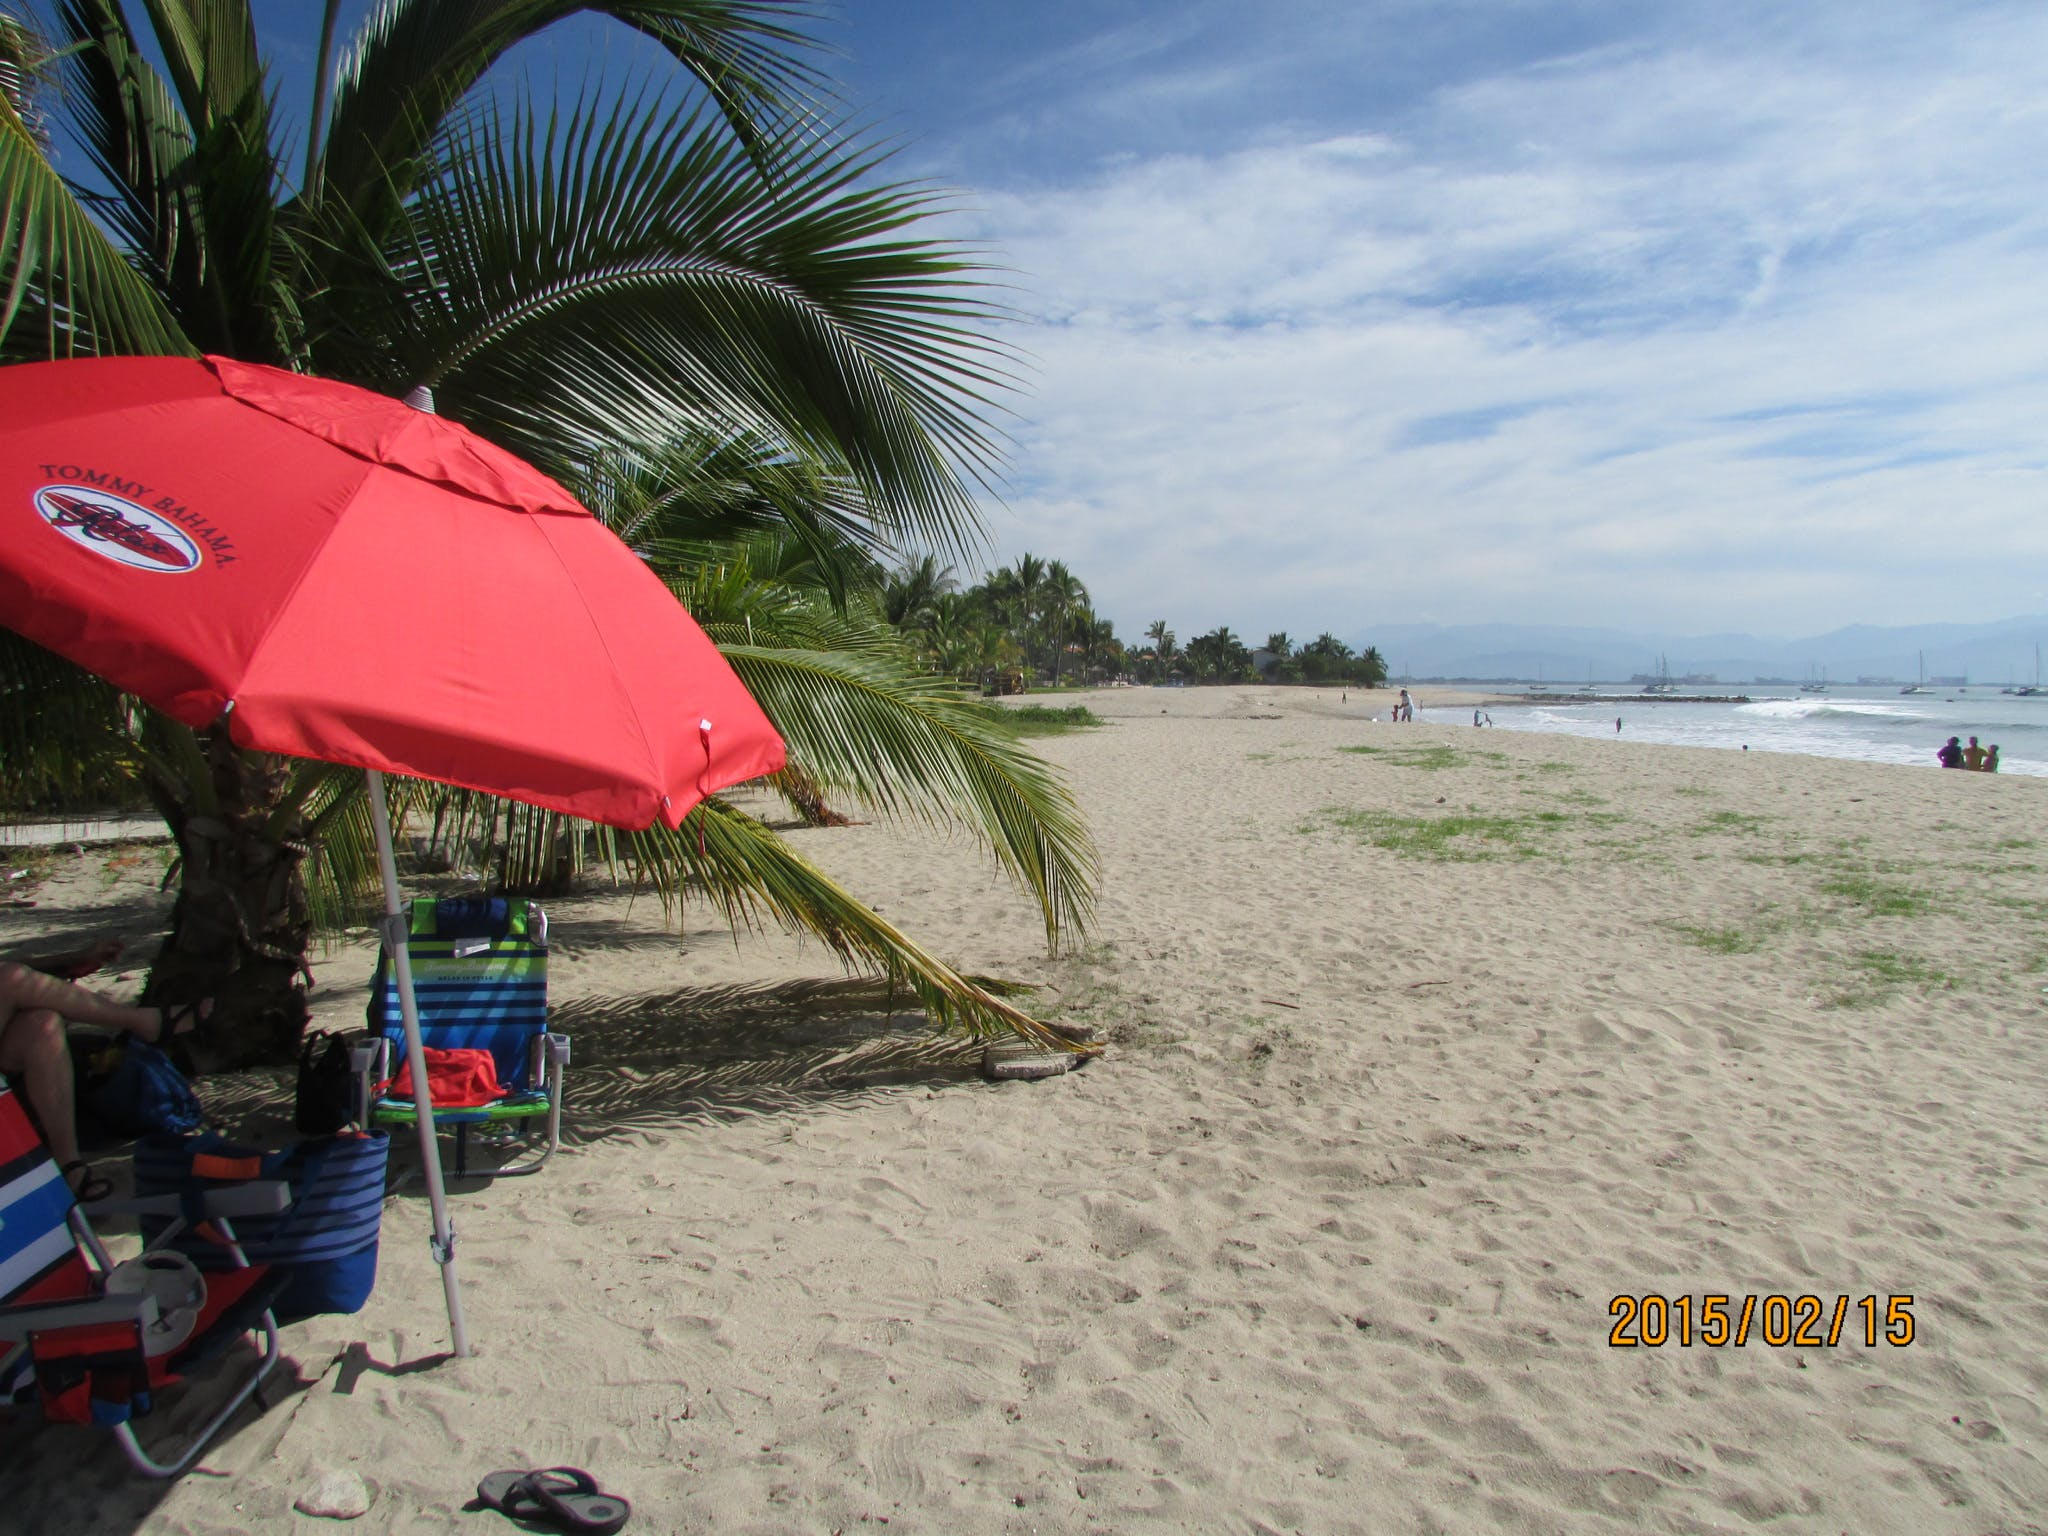 Free stock photo of Beach scene. Red umbrella